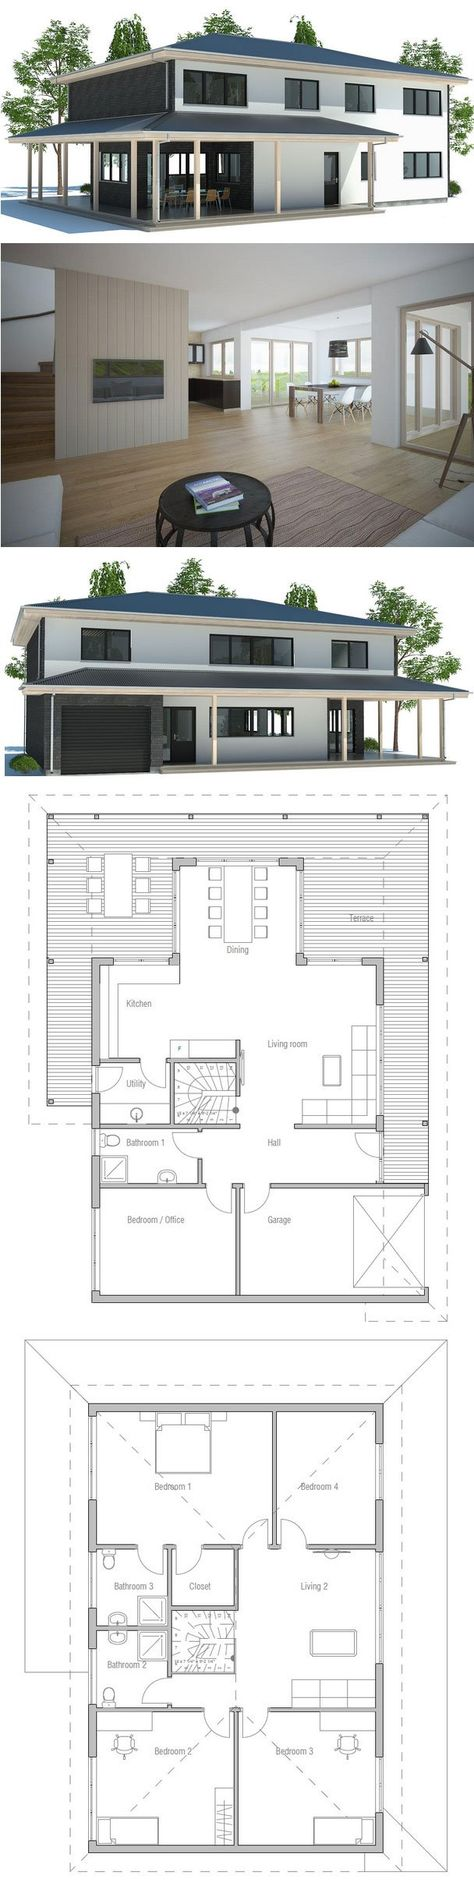 Modern House with large covered terrace. Two floors, family room on the second floor, garage.